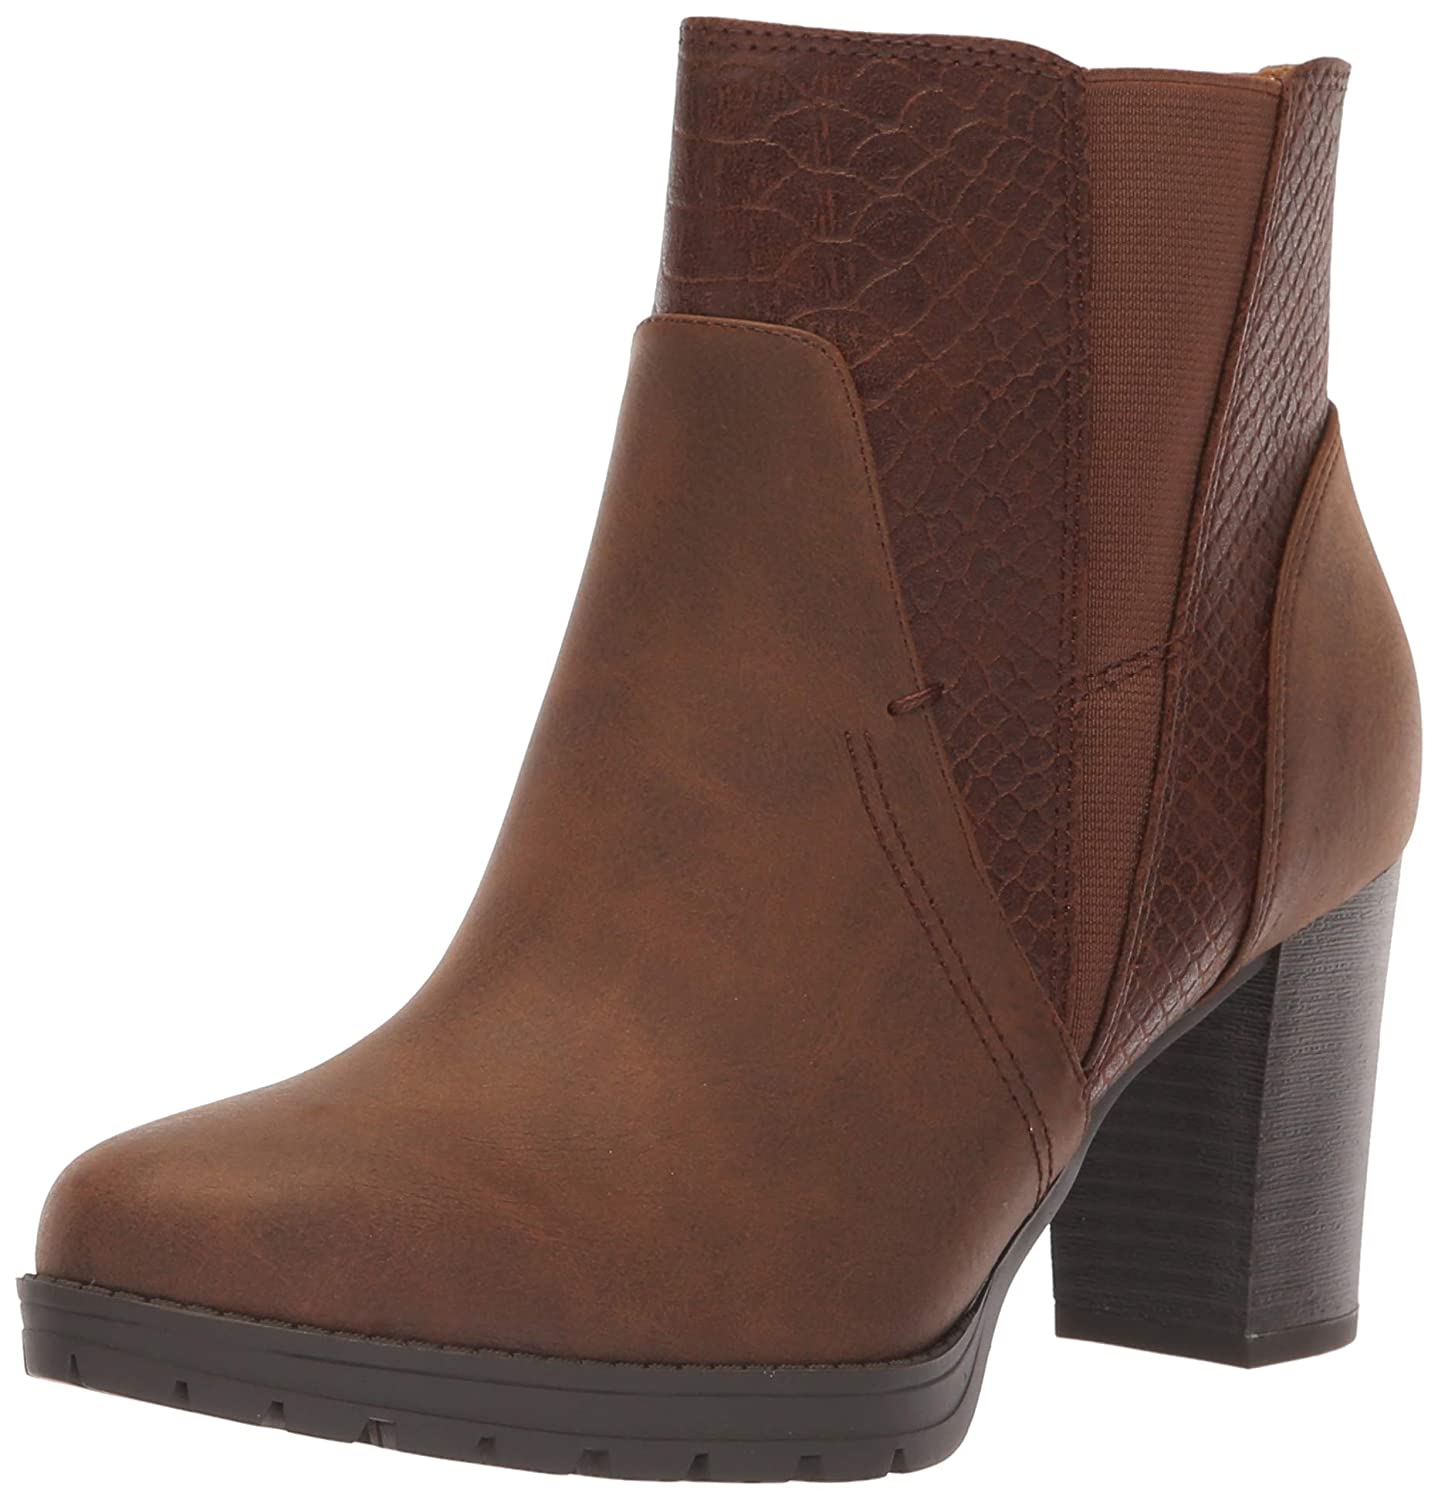 - SOUL Naturalizer Women's Nadia Ankle Boot, Brown, 9 W US